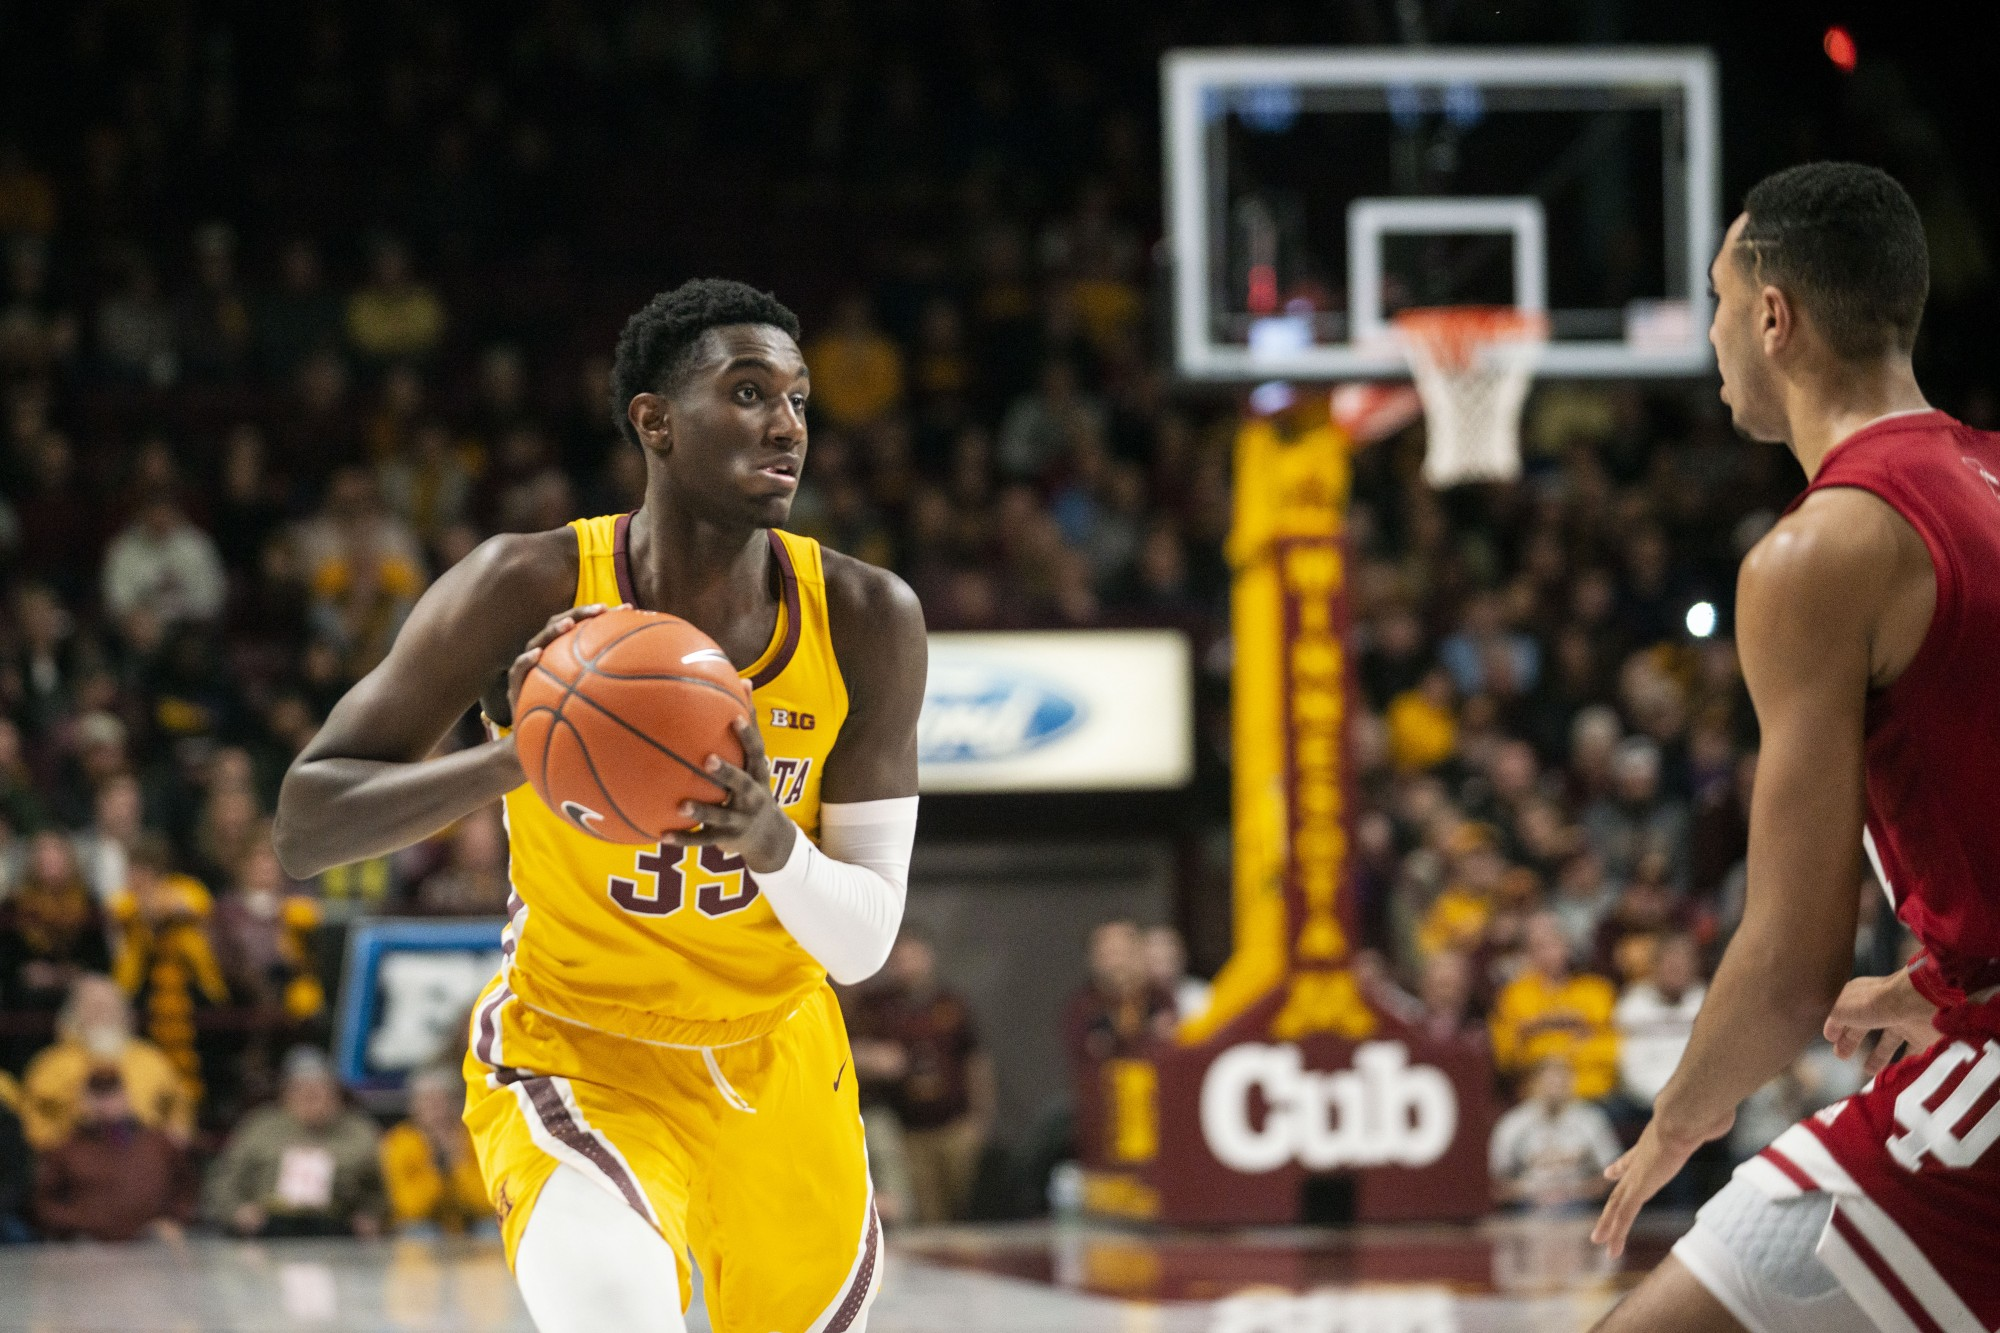 Freshman Isaiah Ihnen looks to pass the ball at Williams Arena on Wednesday, Feb 19.